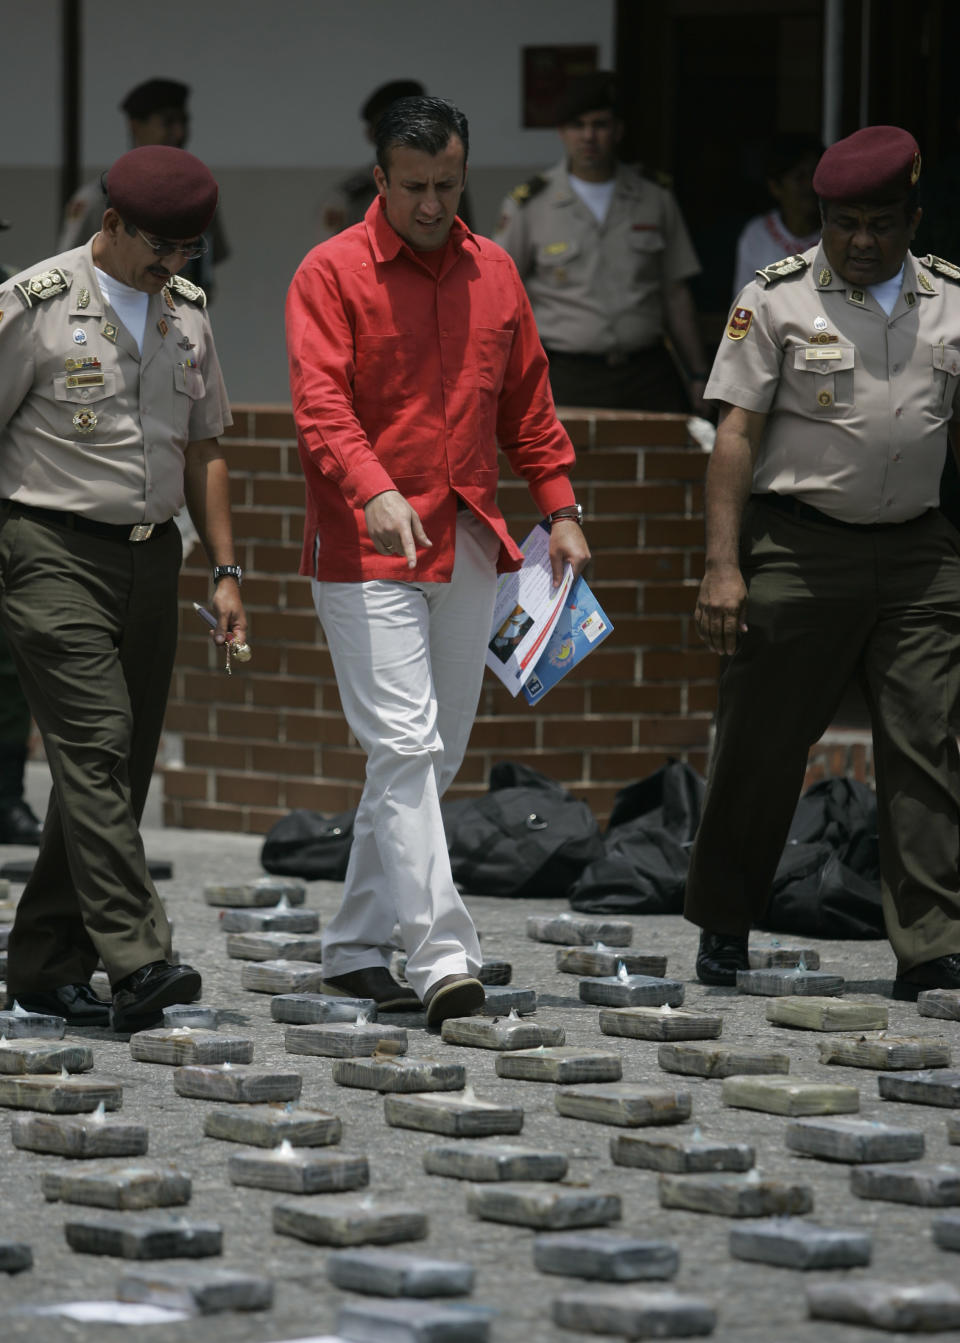 Justice Minister Tareck El Aissami, center,walks among packs of cocaine displayed at a military base in Puerto Cabello Venezuela, Monday, July  27, 2009. (AP: Ariana Cubillos)